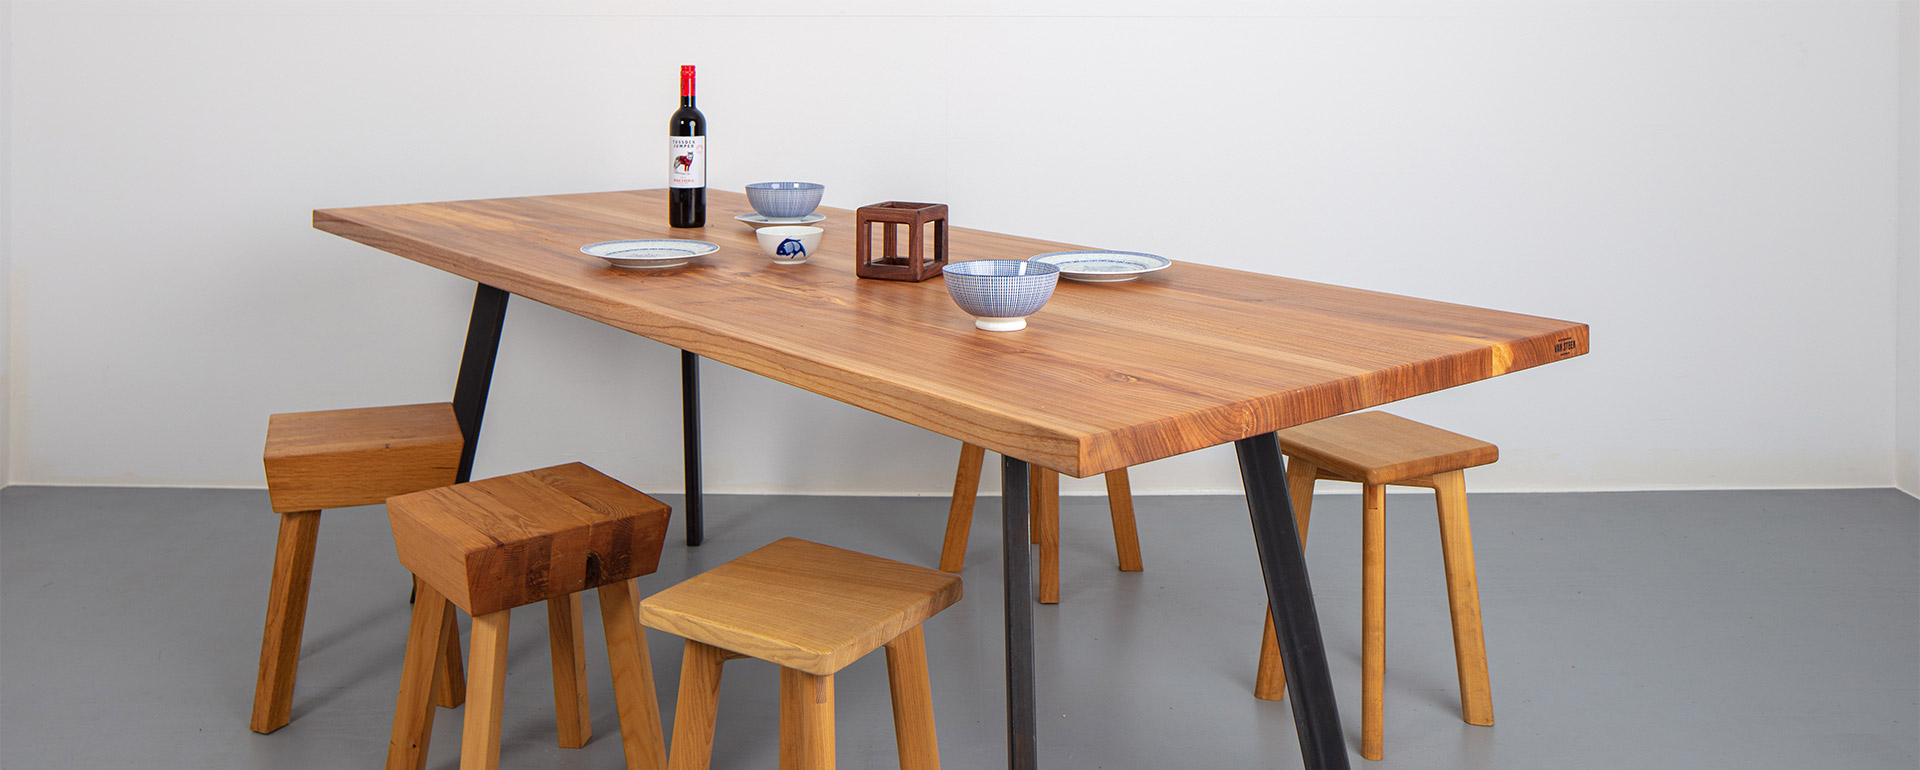 Custom made solid wood tables